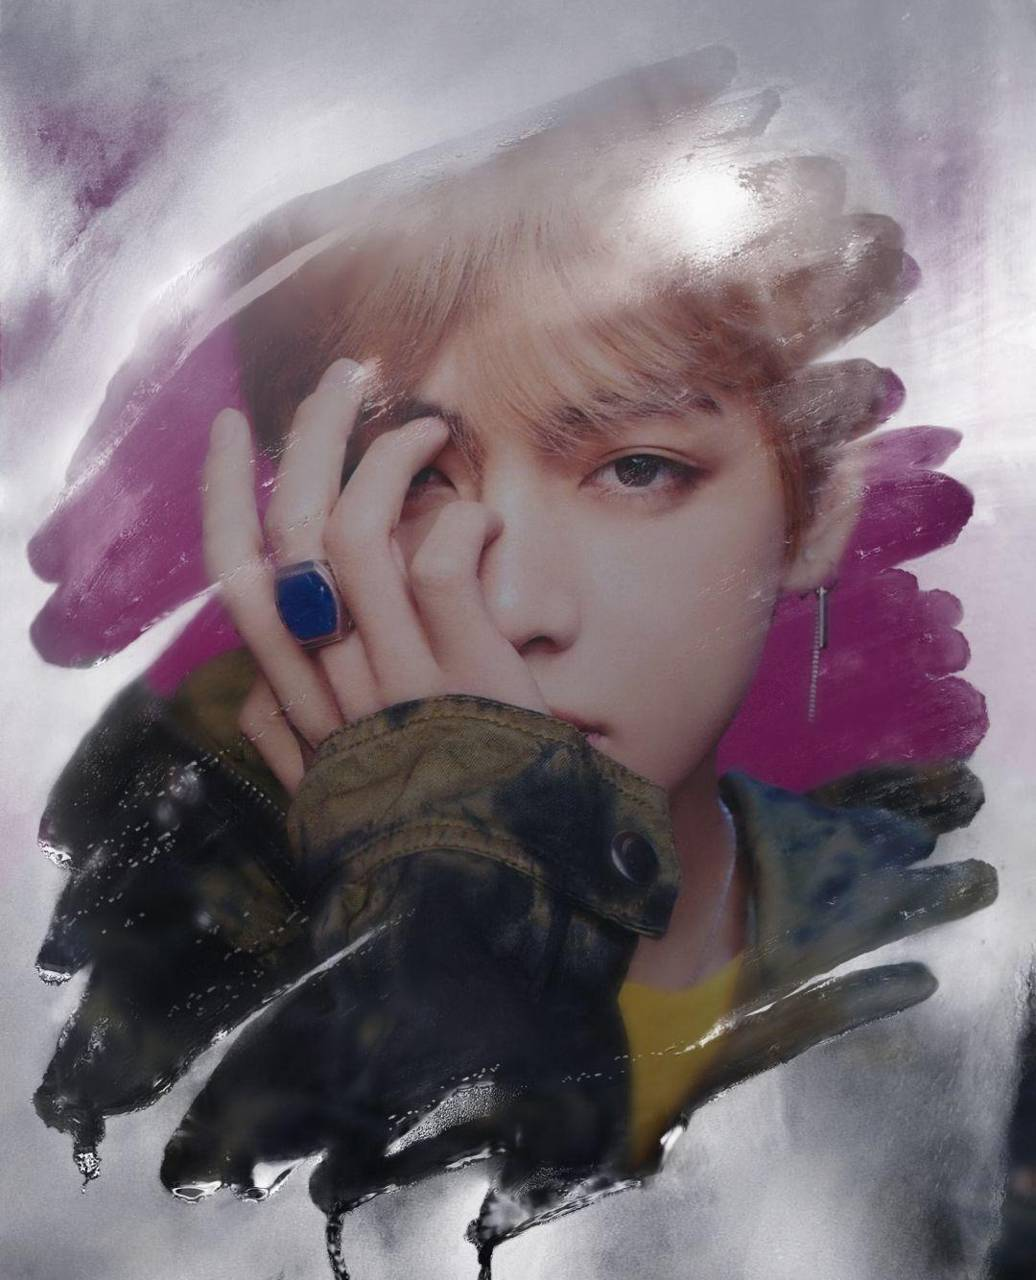 Kim Taehyung Bts Wallpaper By Annvina98 84 Free On Zedge